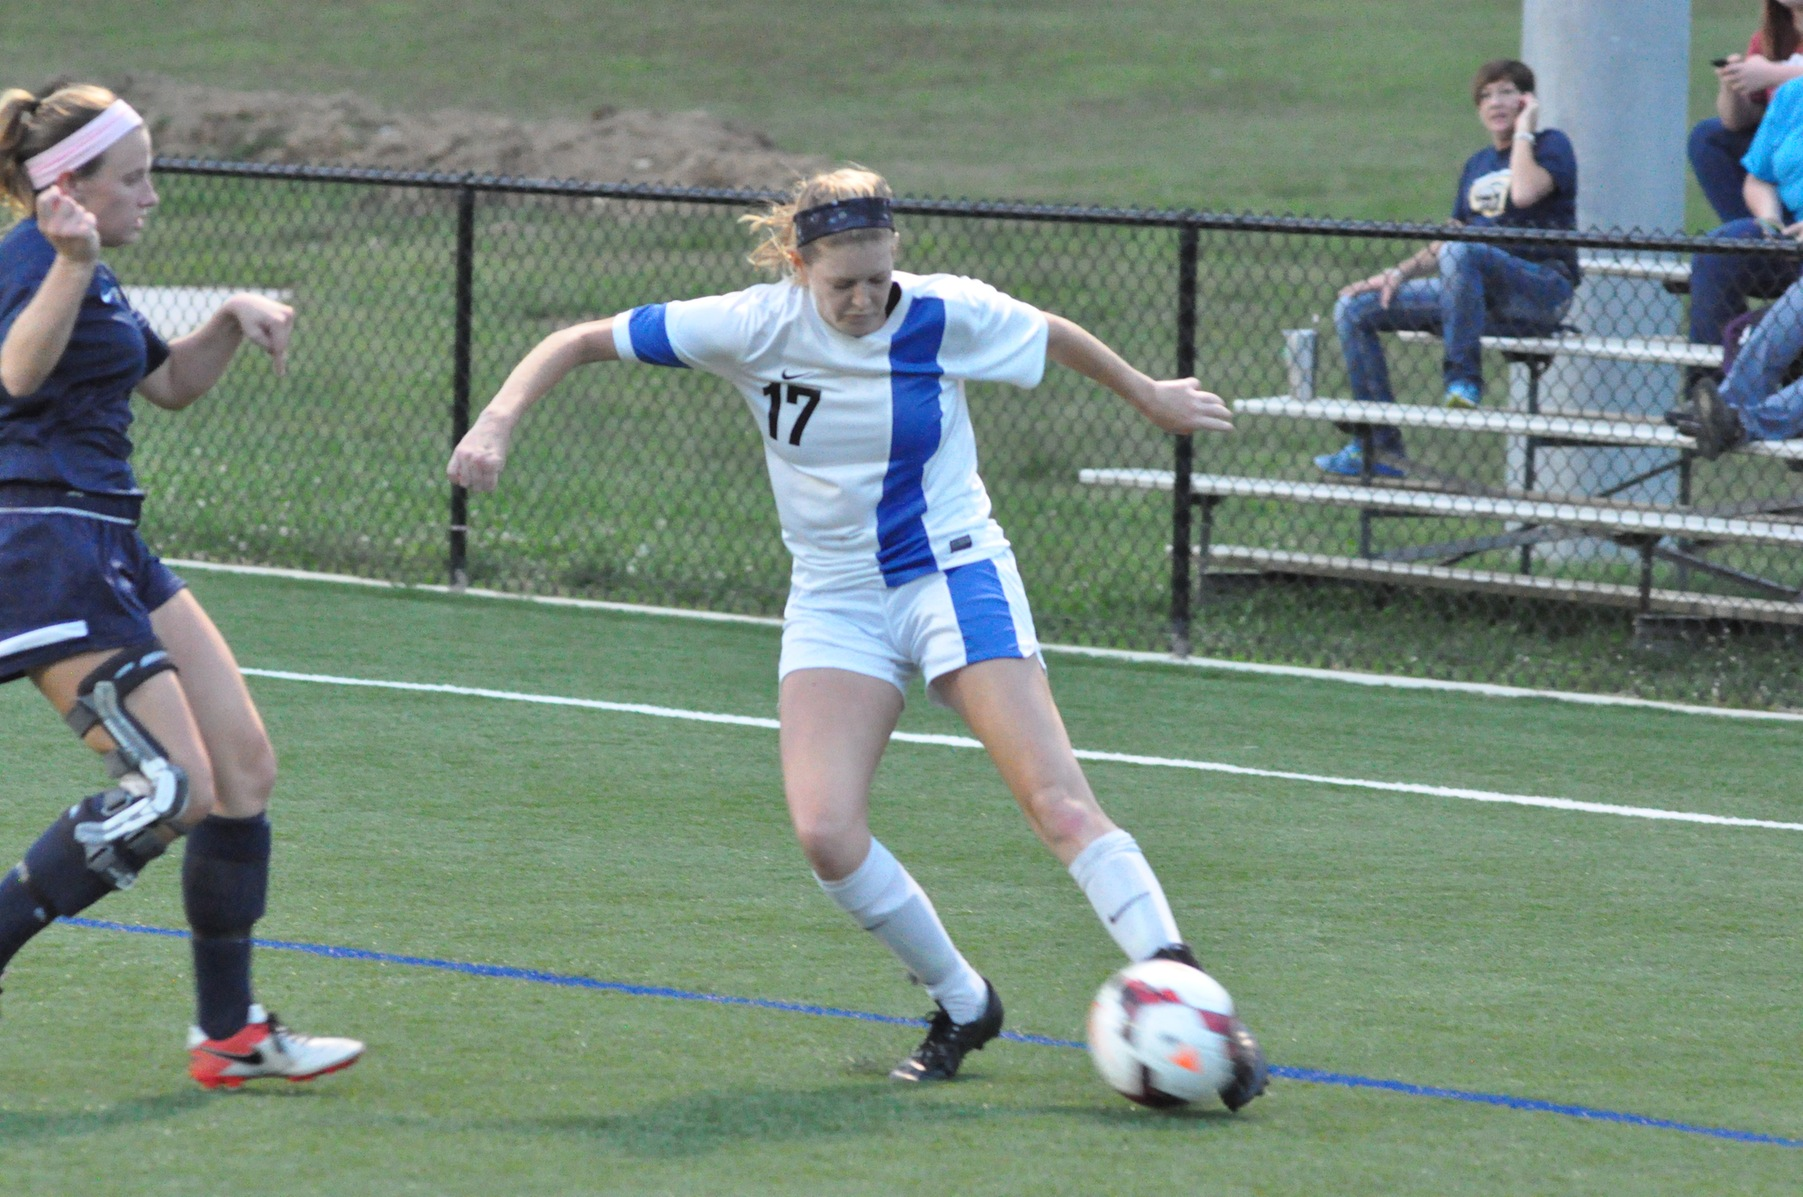 Brevard women's soccer shuts out Emory & Henry to earn first home win